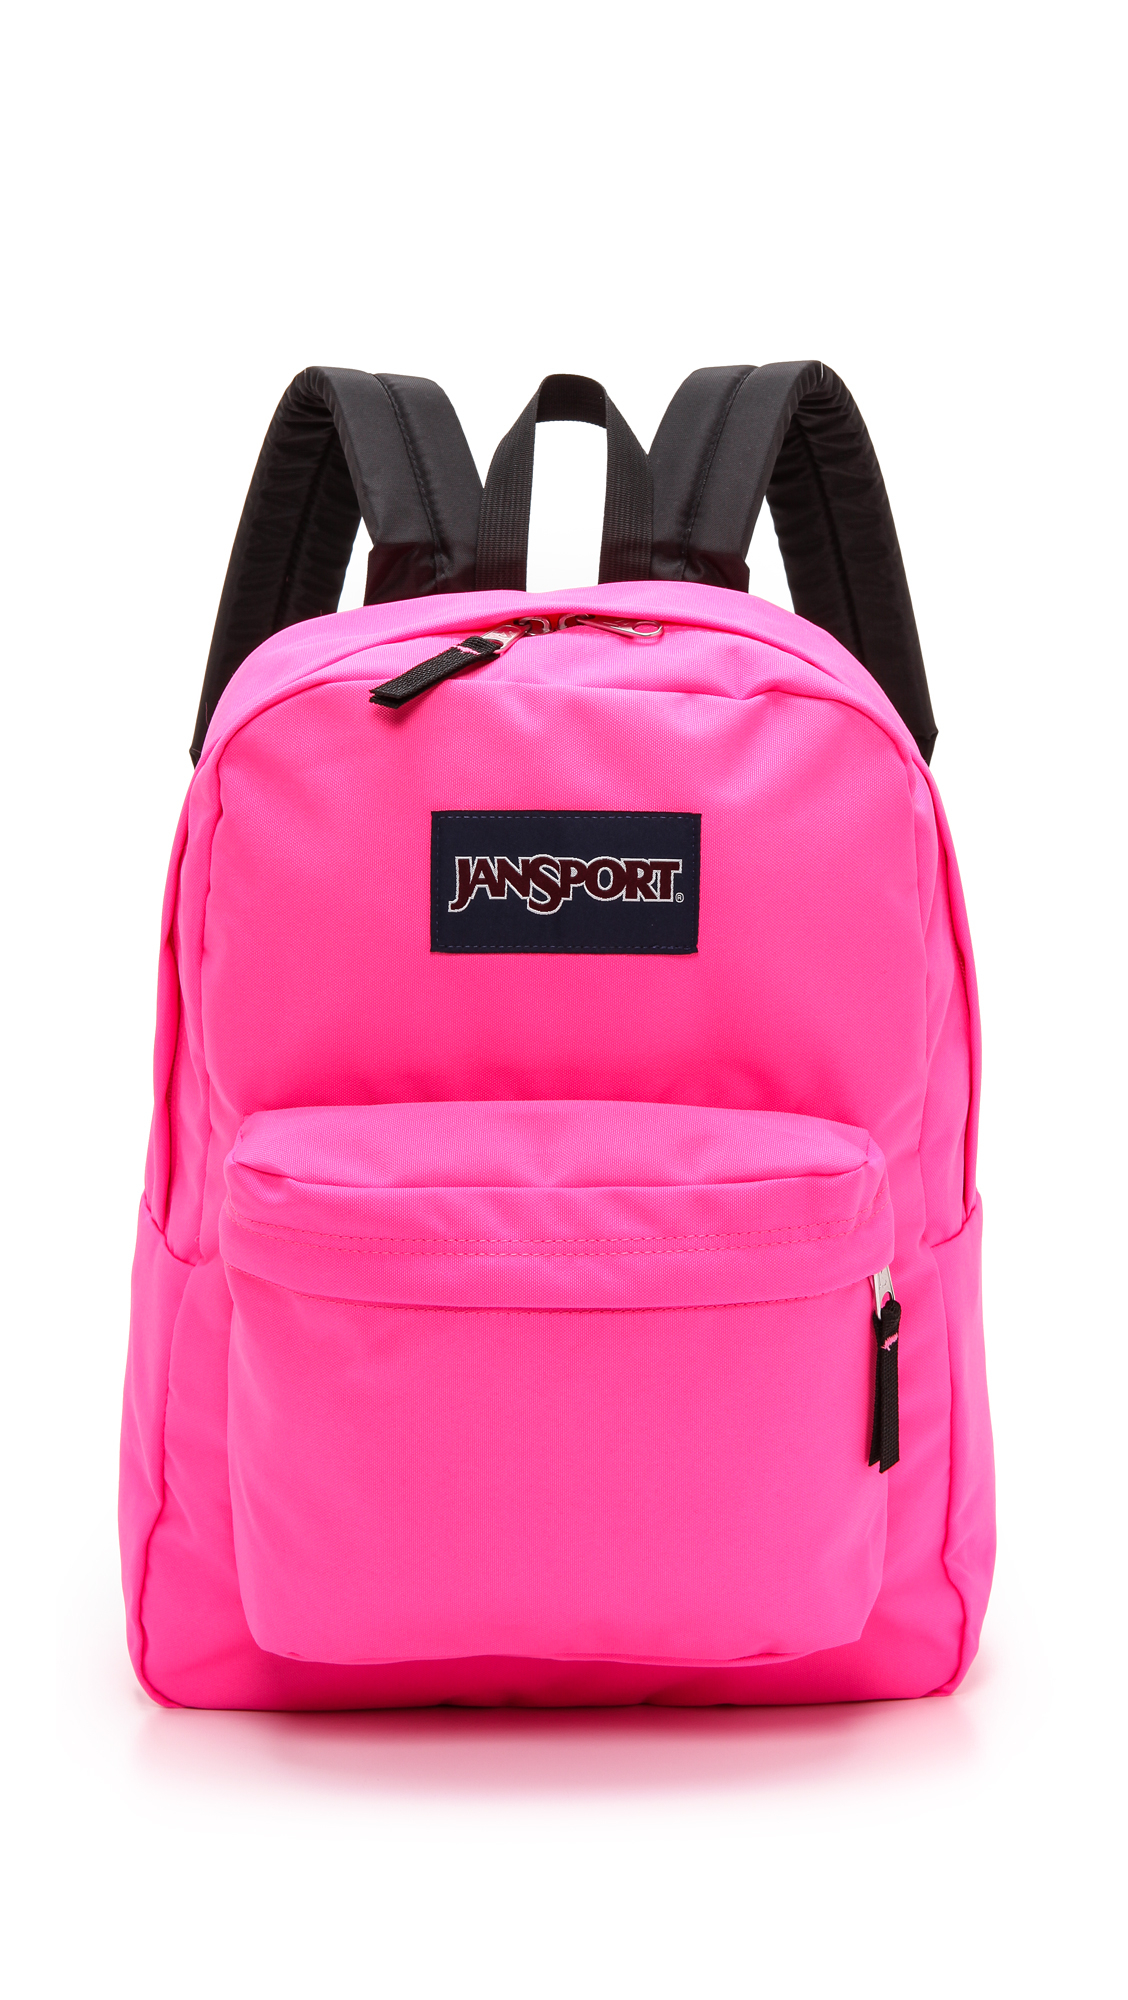 Jansport backpacks free shipping - Online Discount